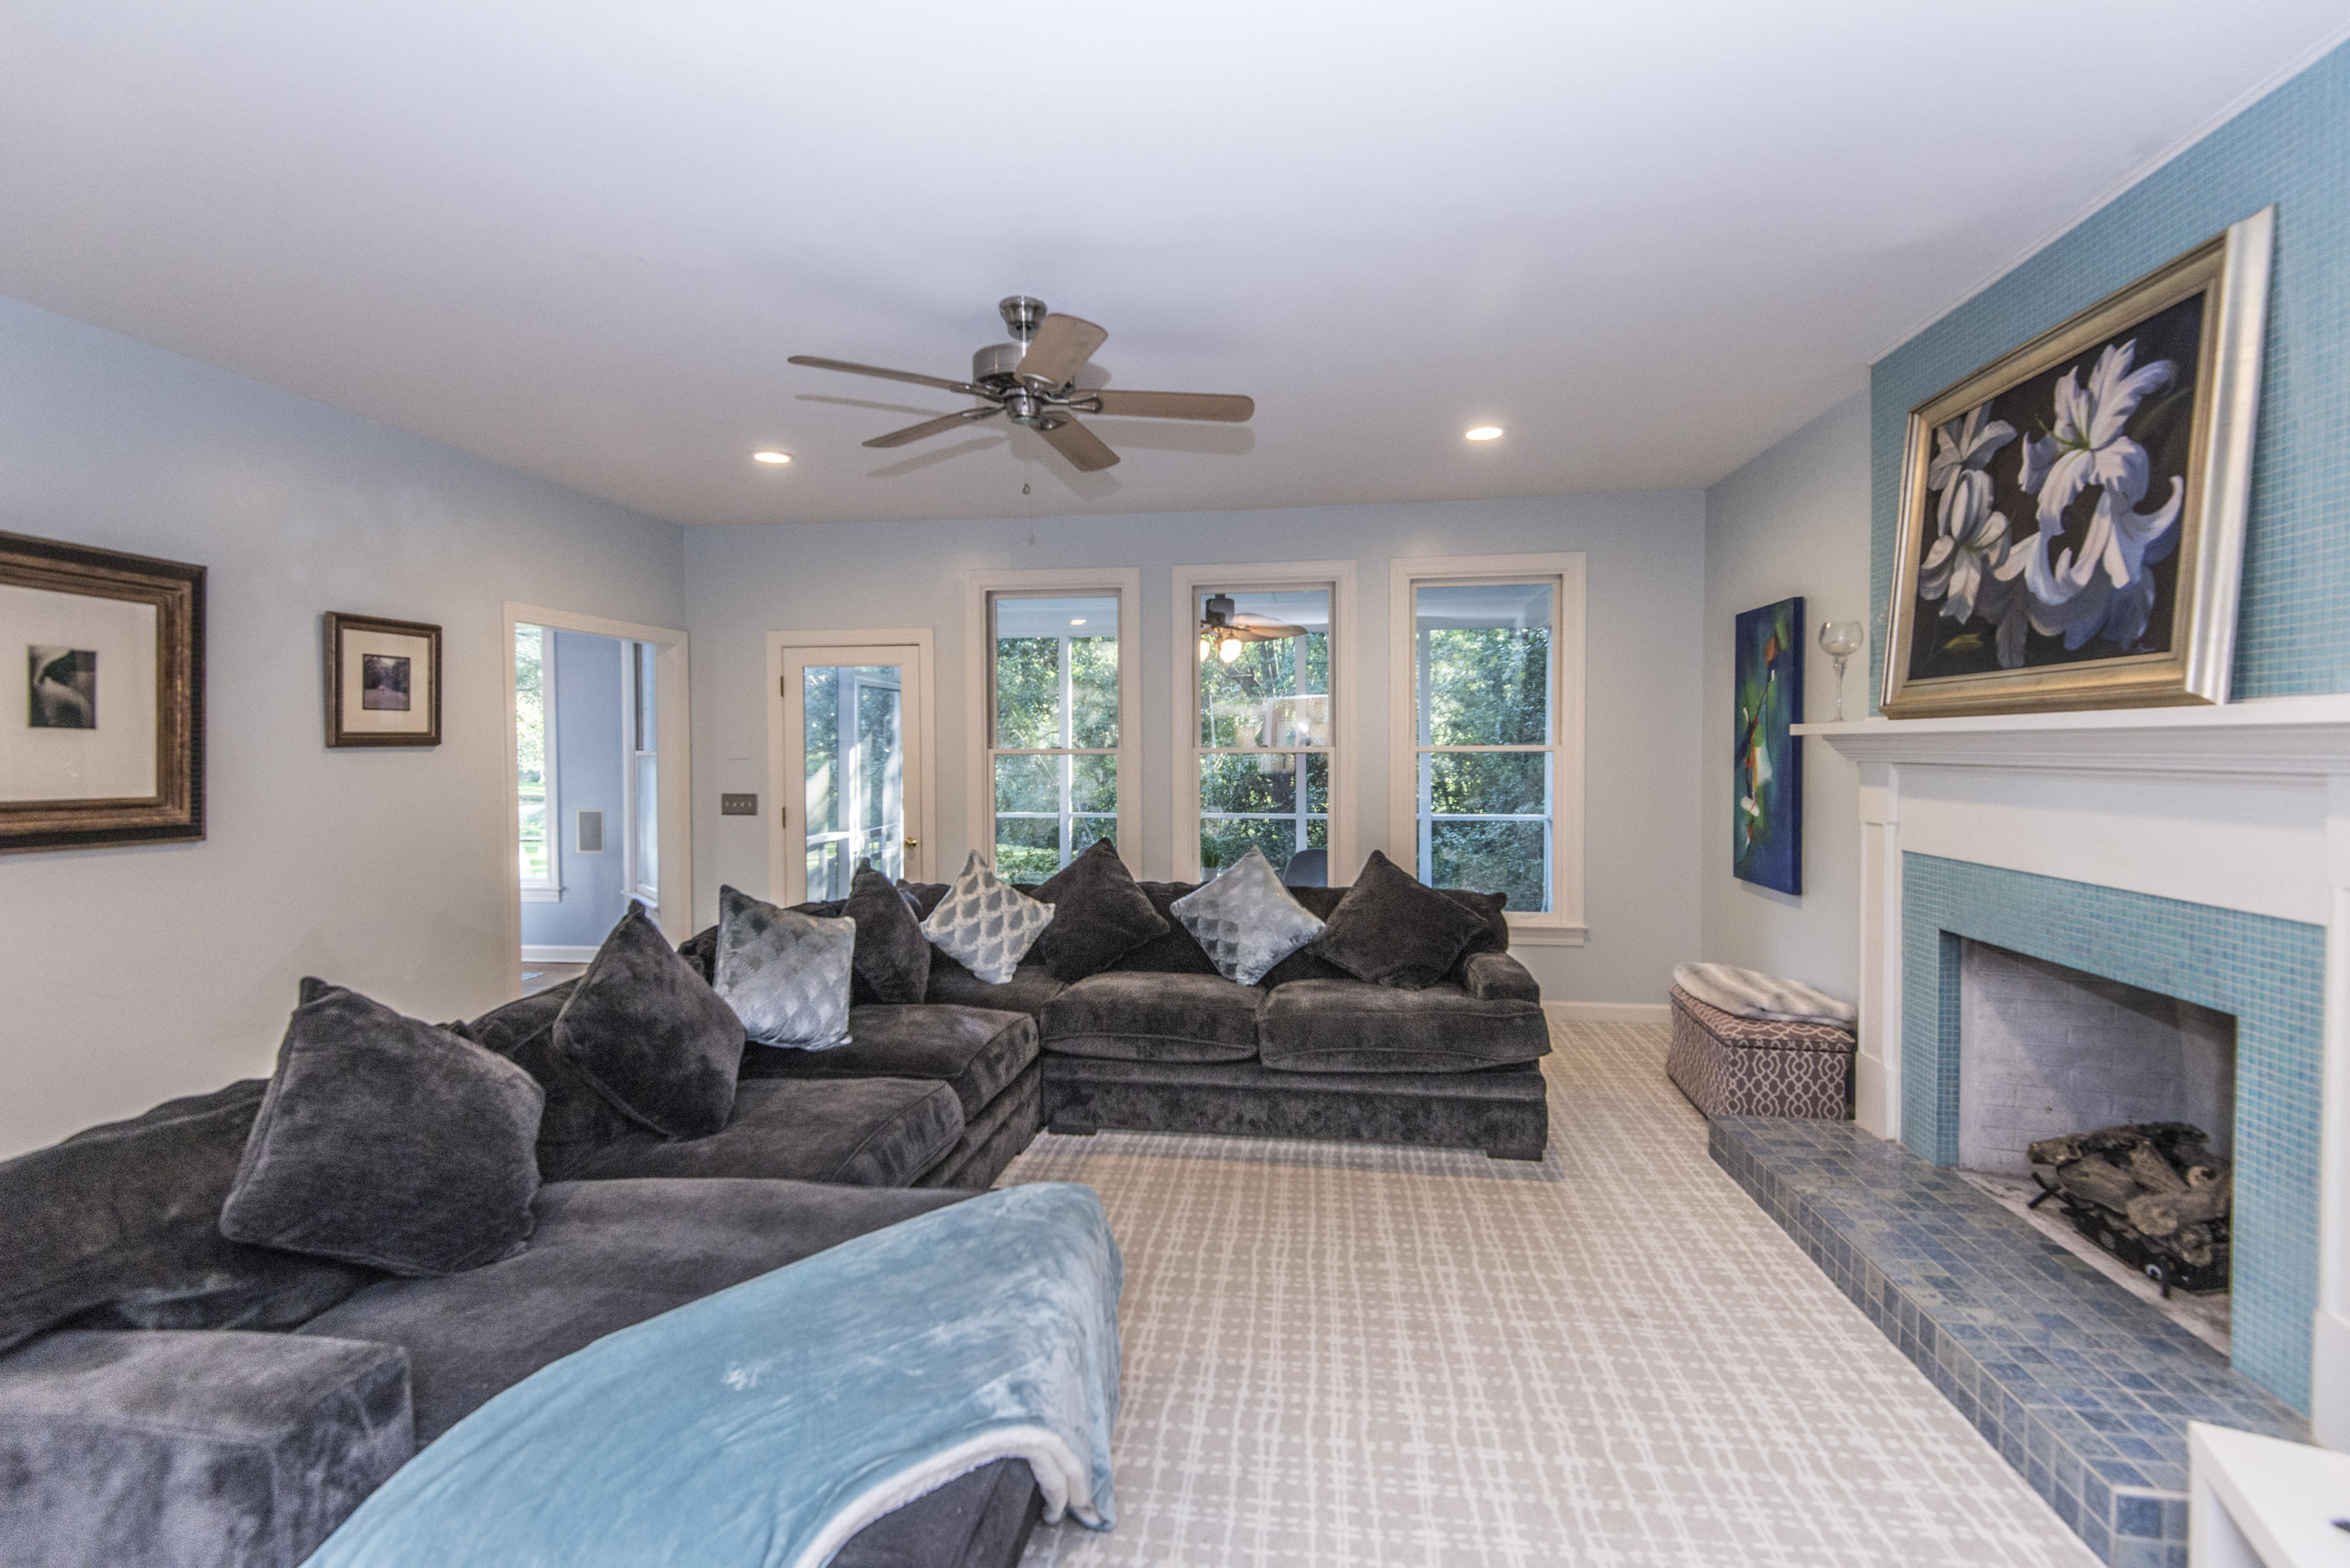 Maclaura Hall Homes For Sale - 3232 Hagerty, Charleston, SC - 22